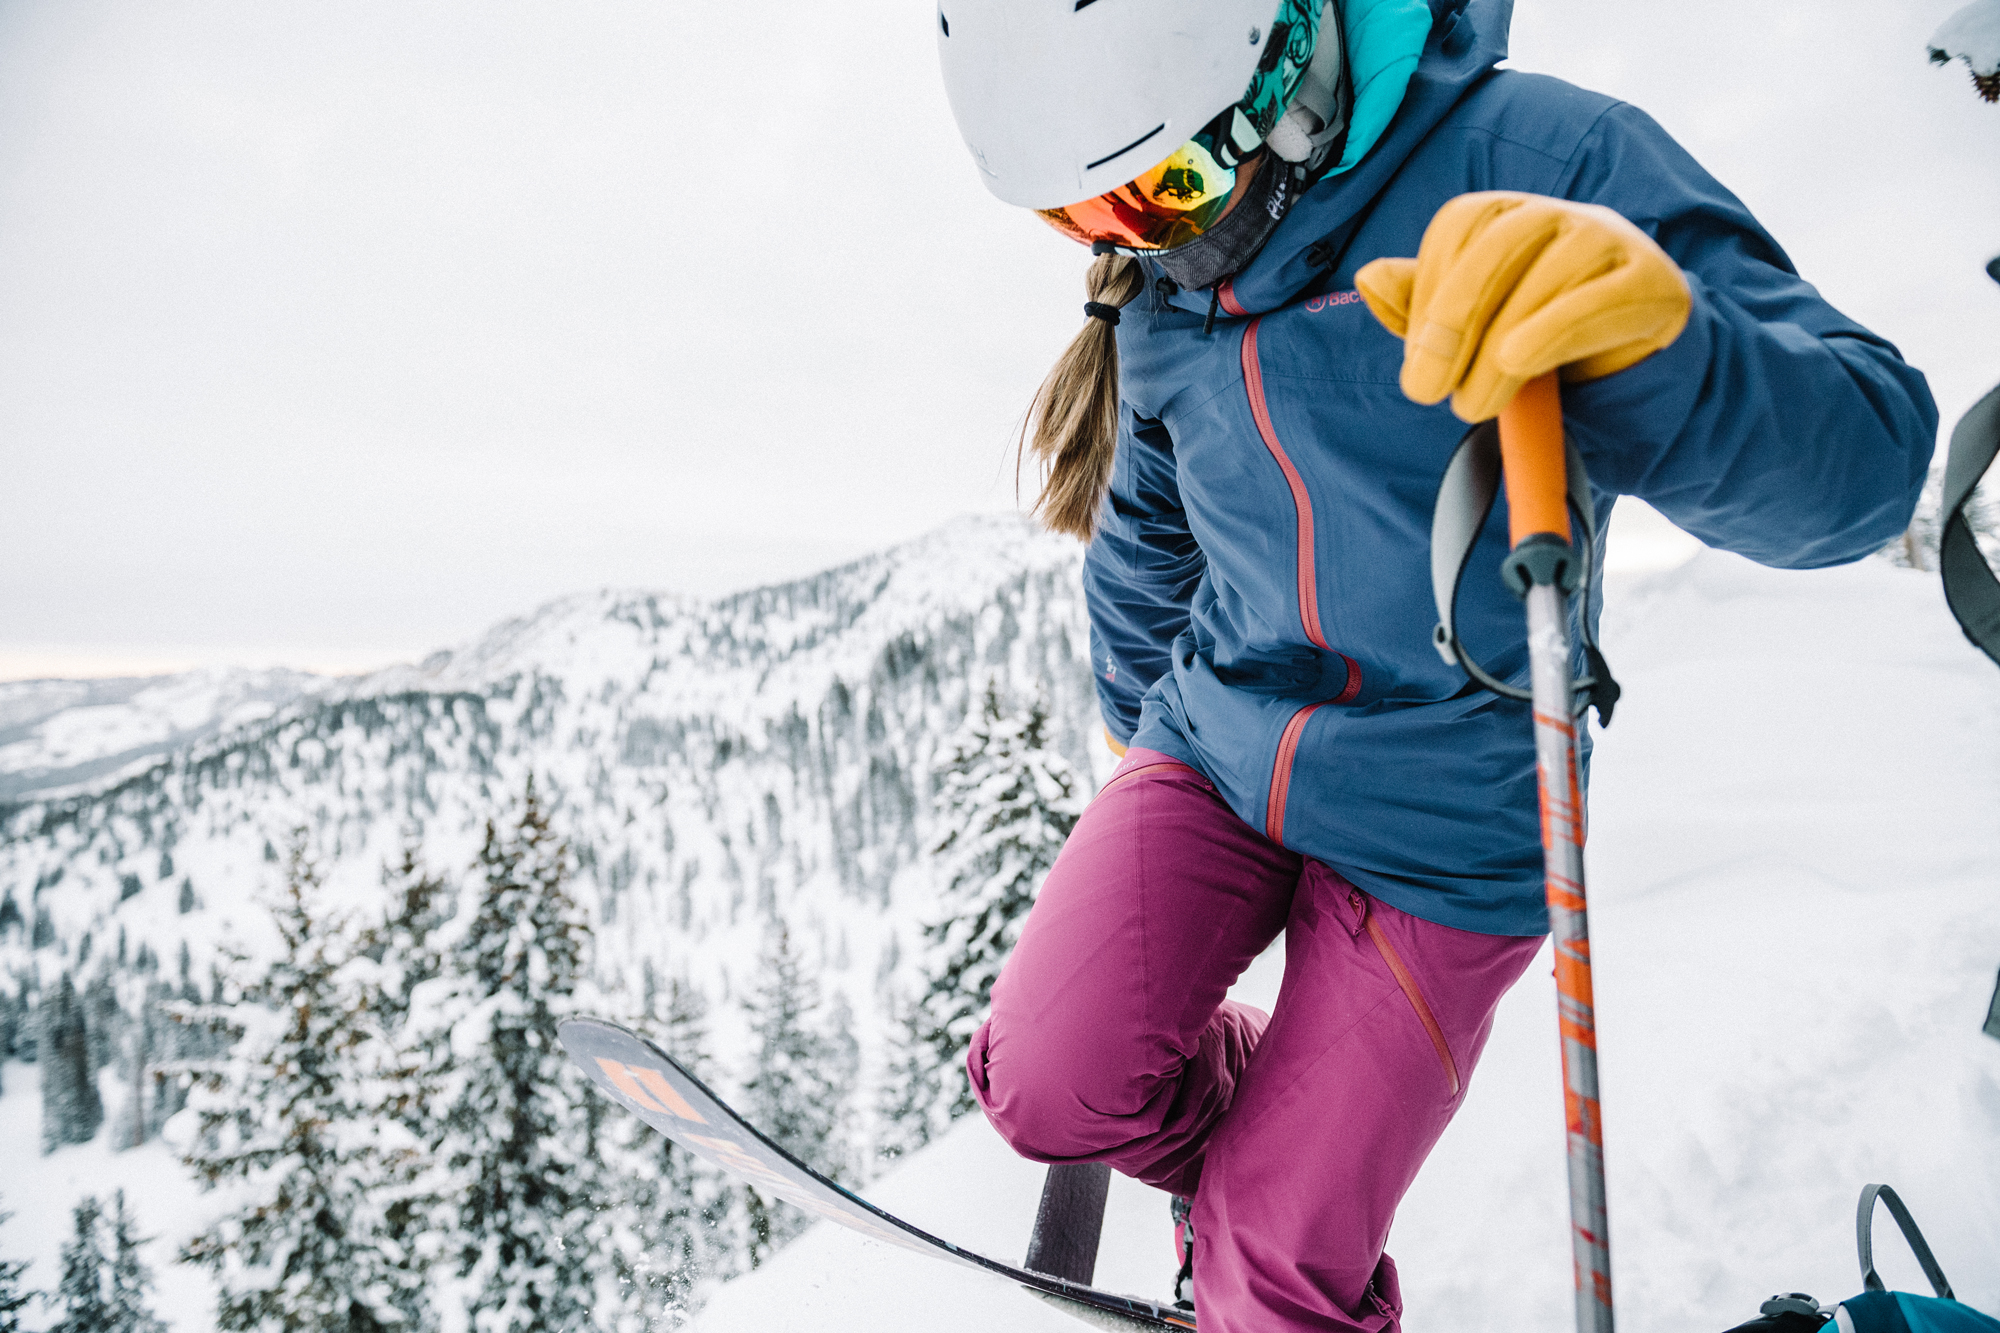 fe75494a29 Online Retailer Backcountry.com Launches Branded Gear